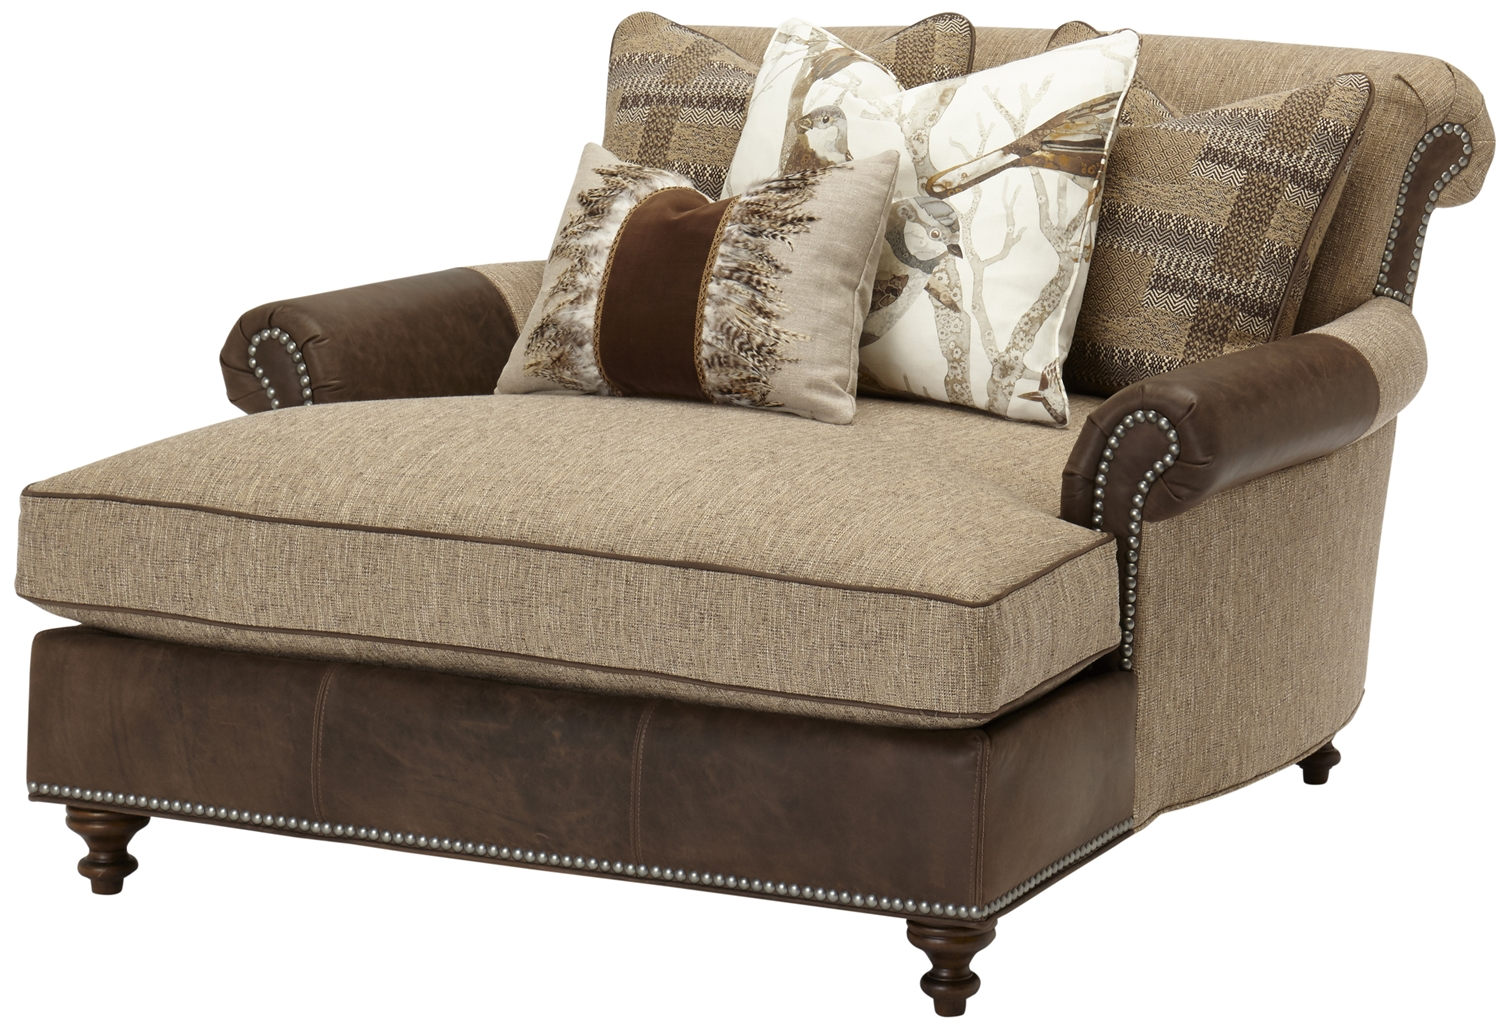 luxury leather upholstered furniture double chair chaise